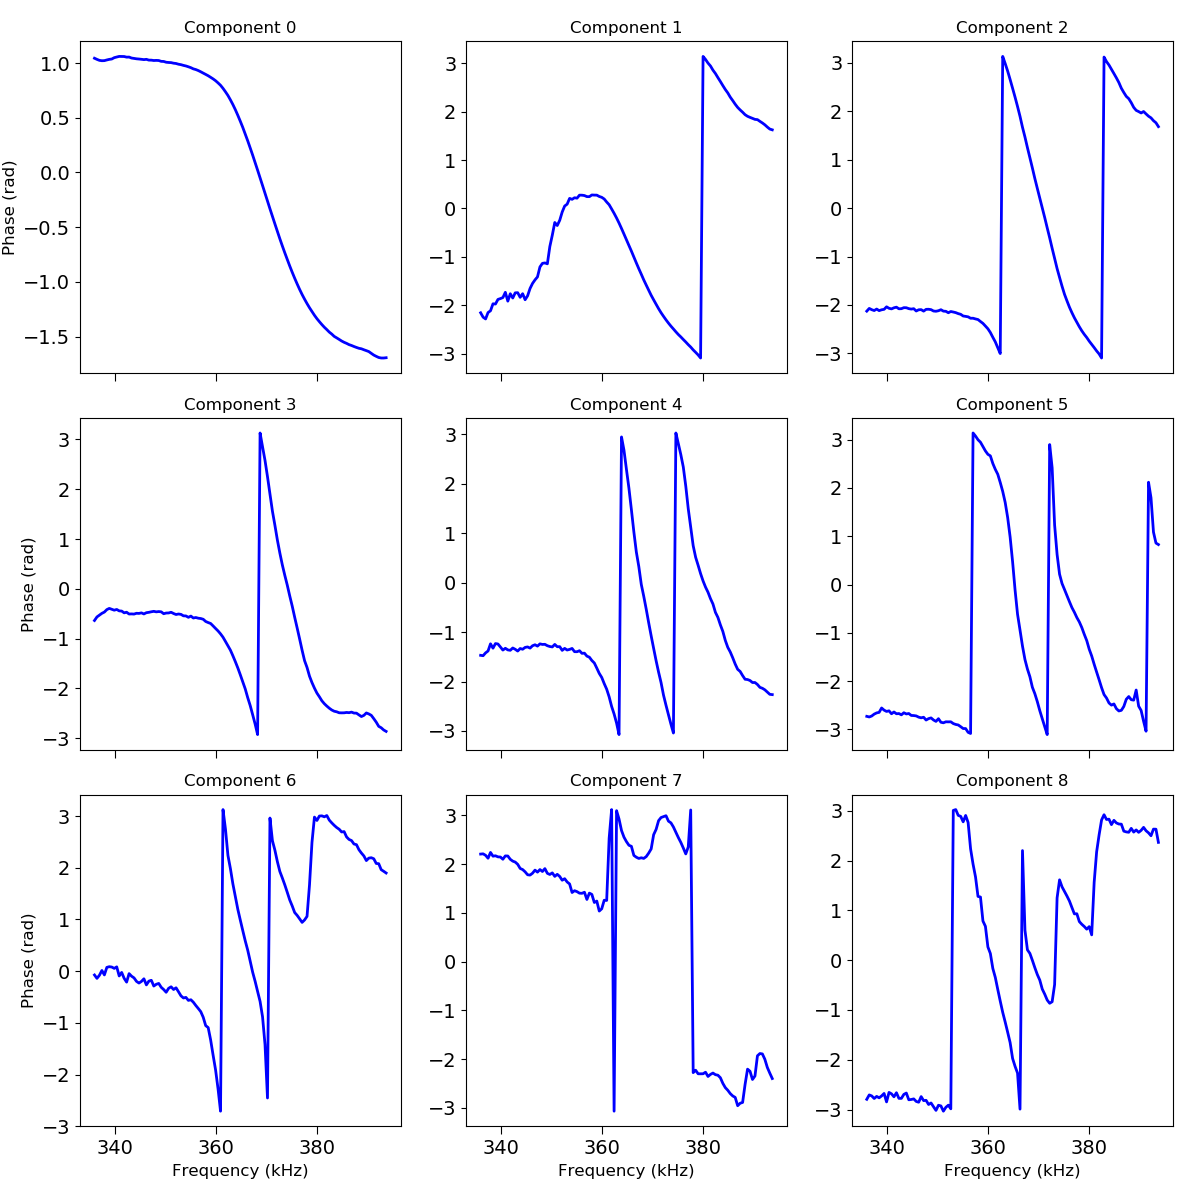 docs/auto_examples/images/sphx_glr_plot_spectral_unmixing_004.png